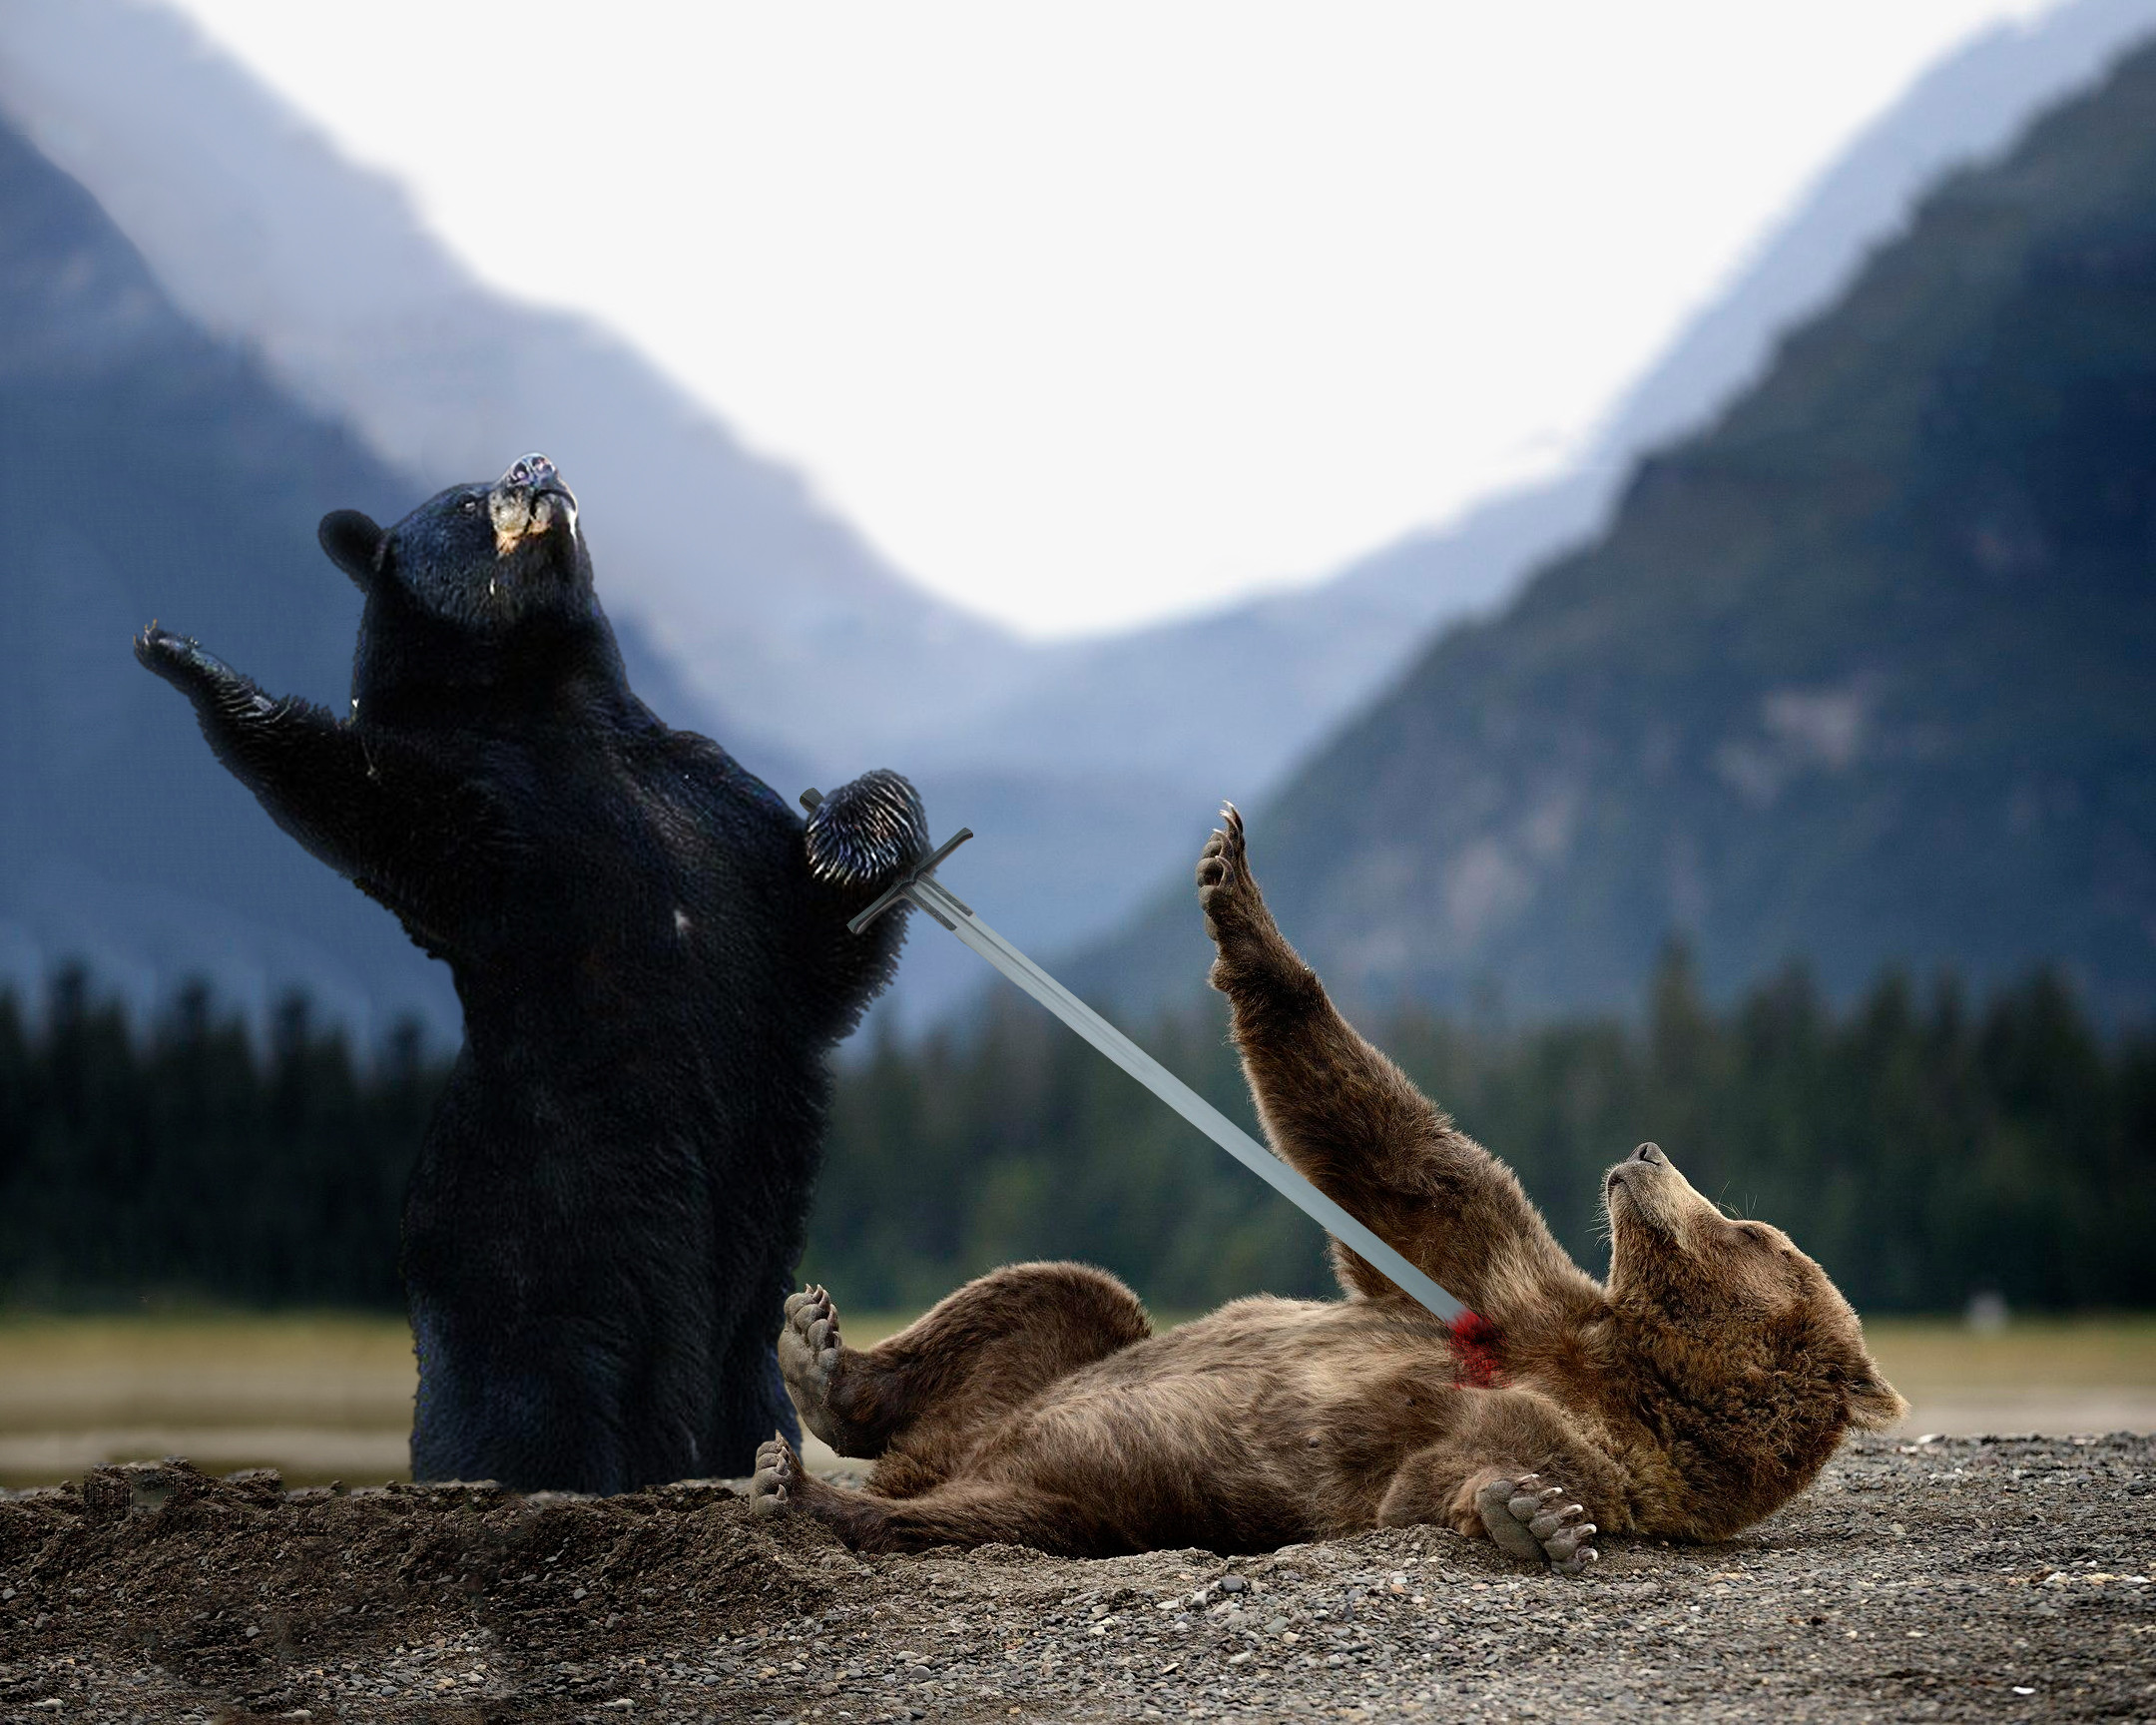 Funny Pictures Of The Day - 72 Pics |Funny Black Bear Family